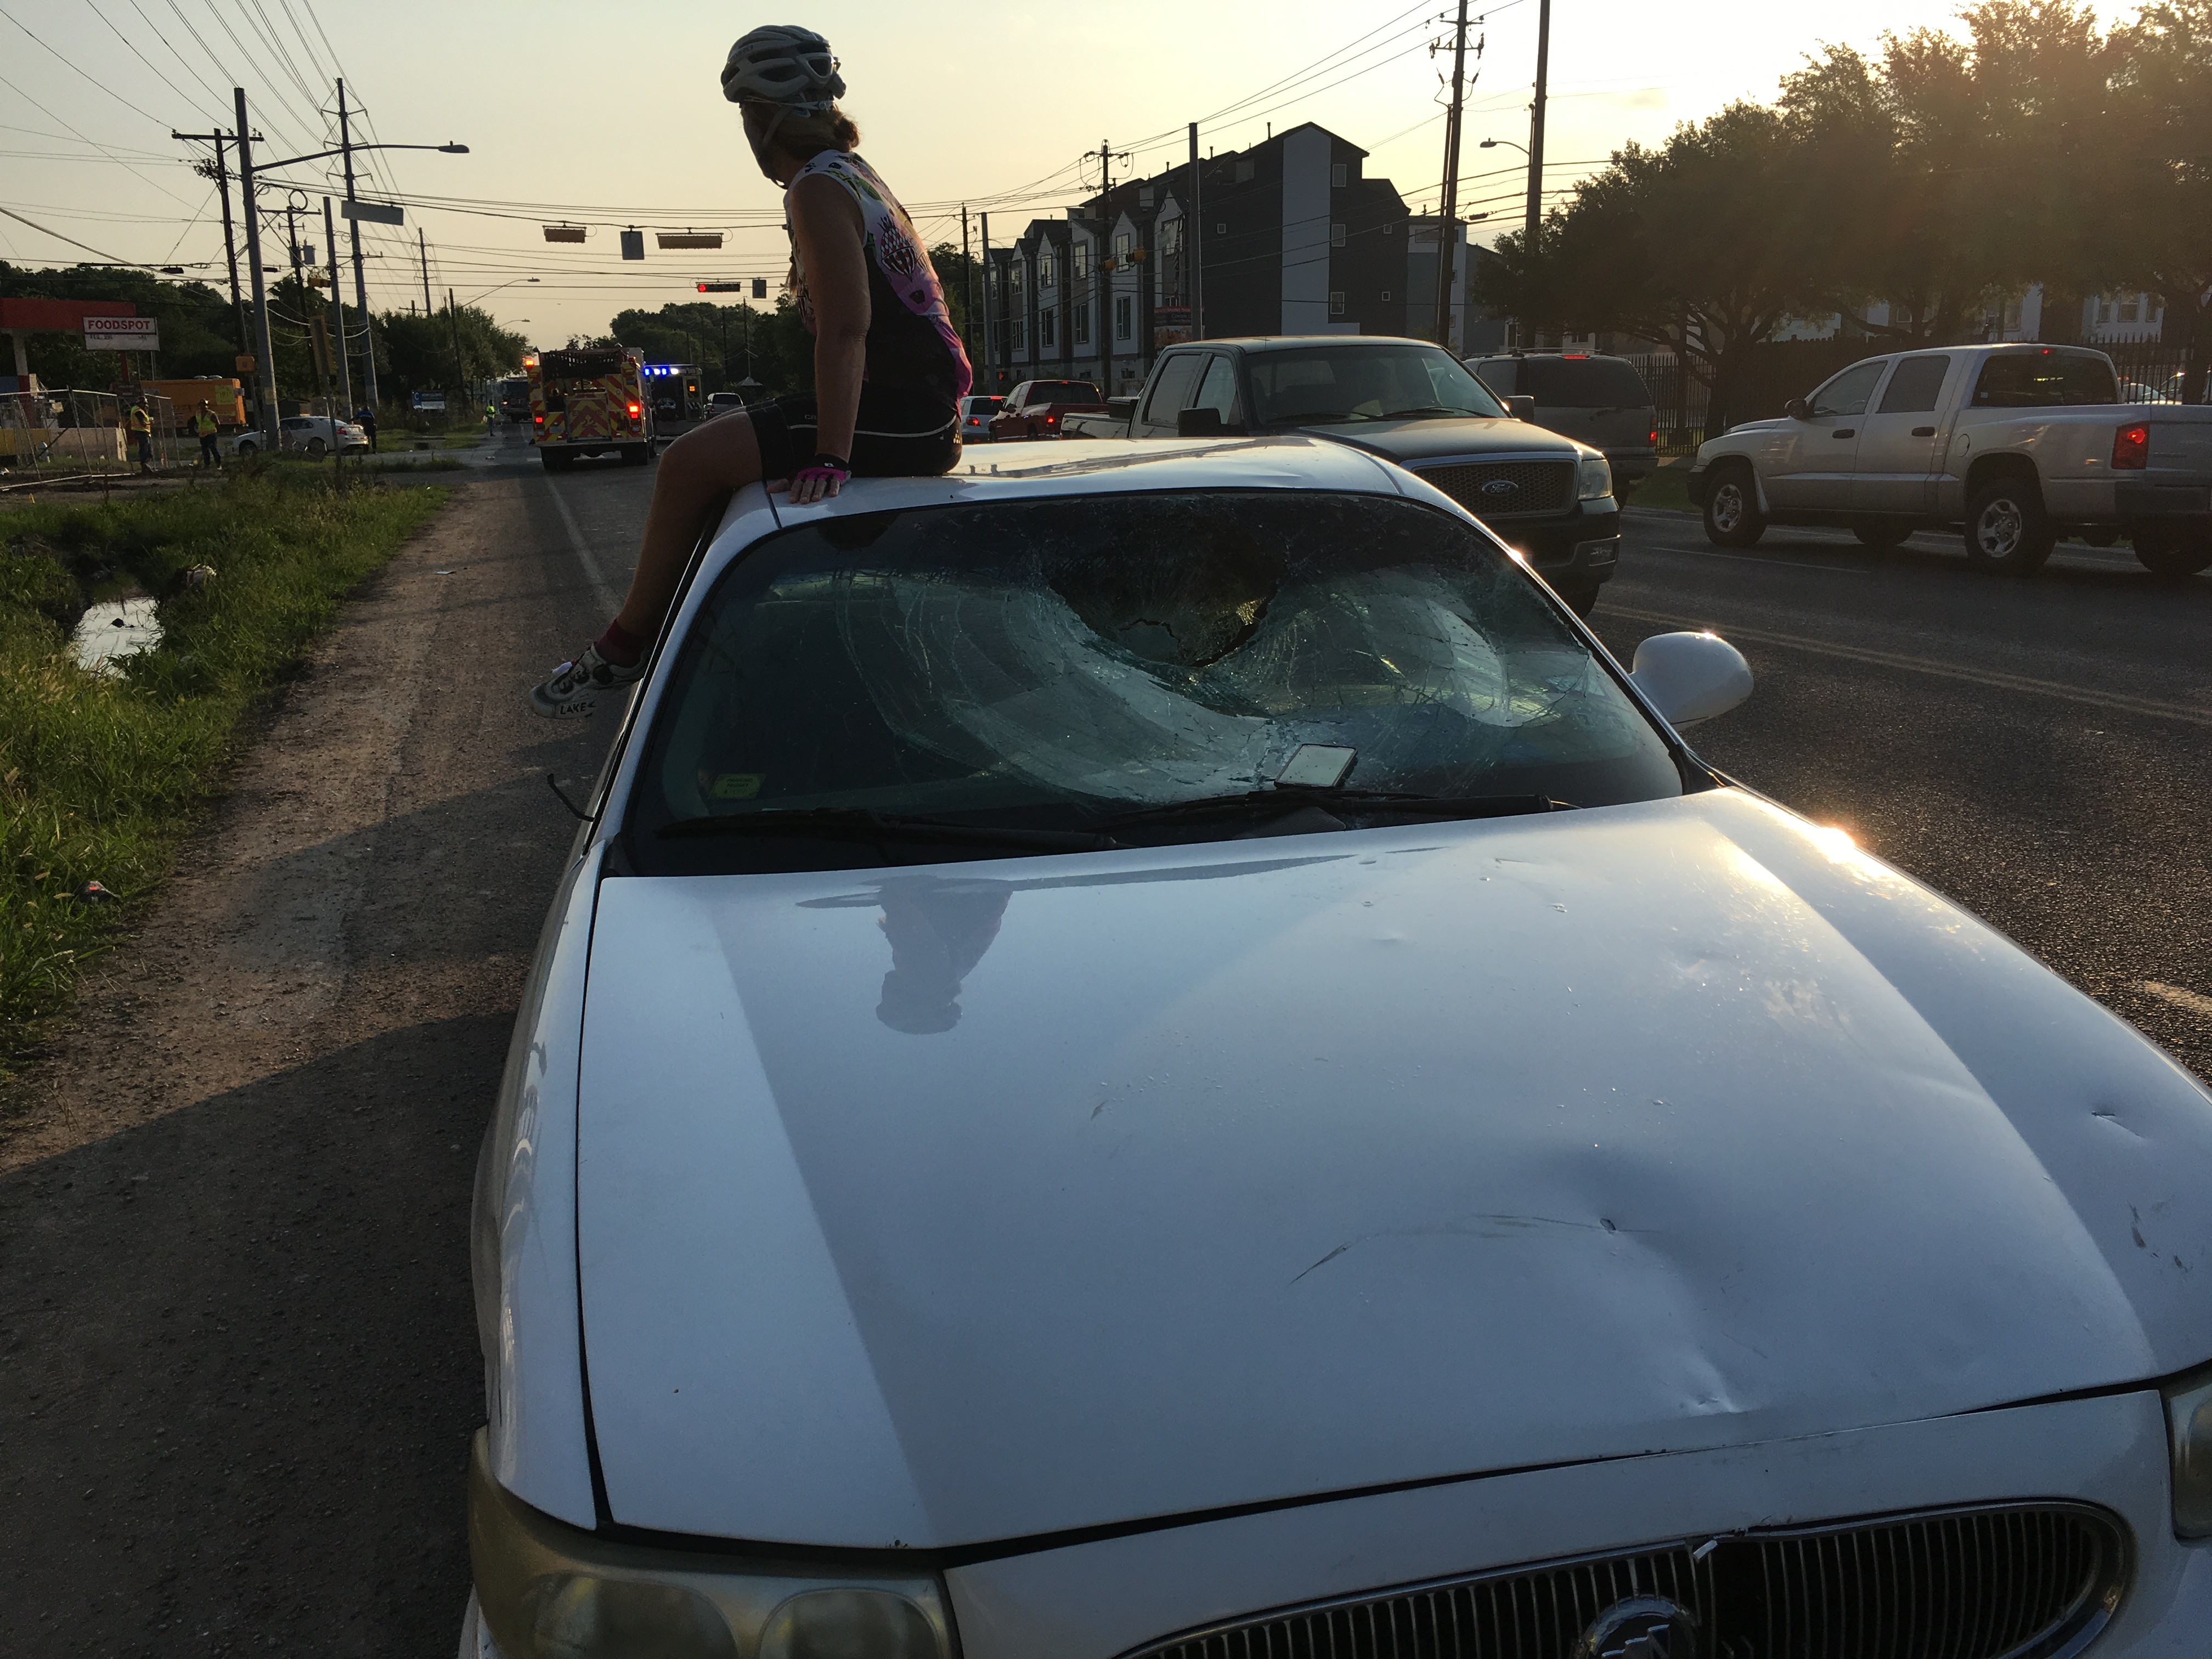 A bicyclist sitting on top of the vehicle that hit four bicyclists on South Pleasant Valley Road and Elmont Drive on Saturday, June 10, 2017. (Courtesy: Wendy Meyer)